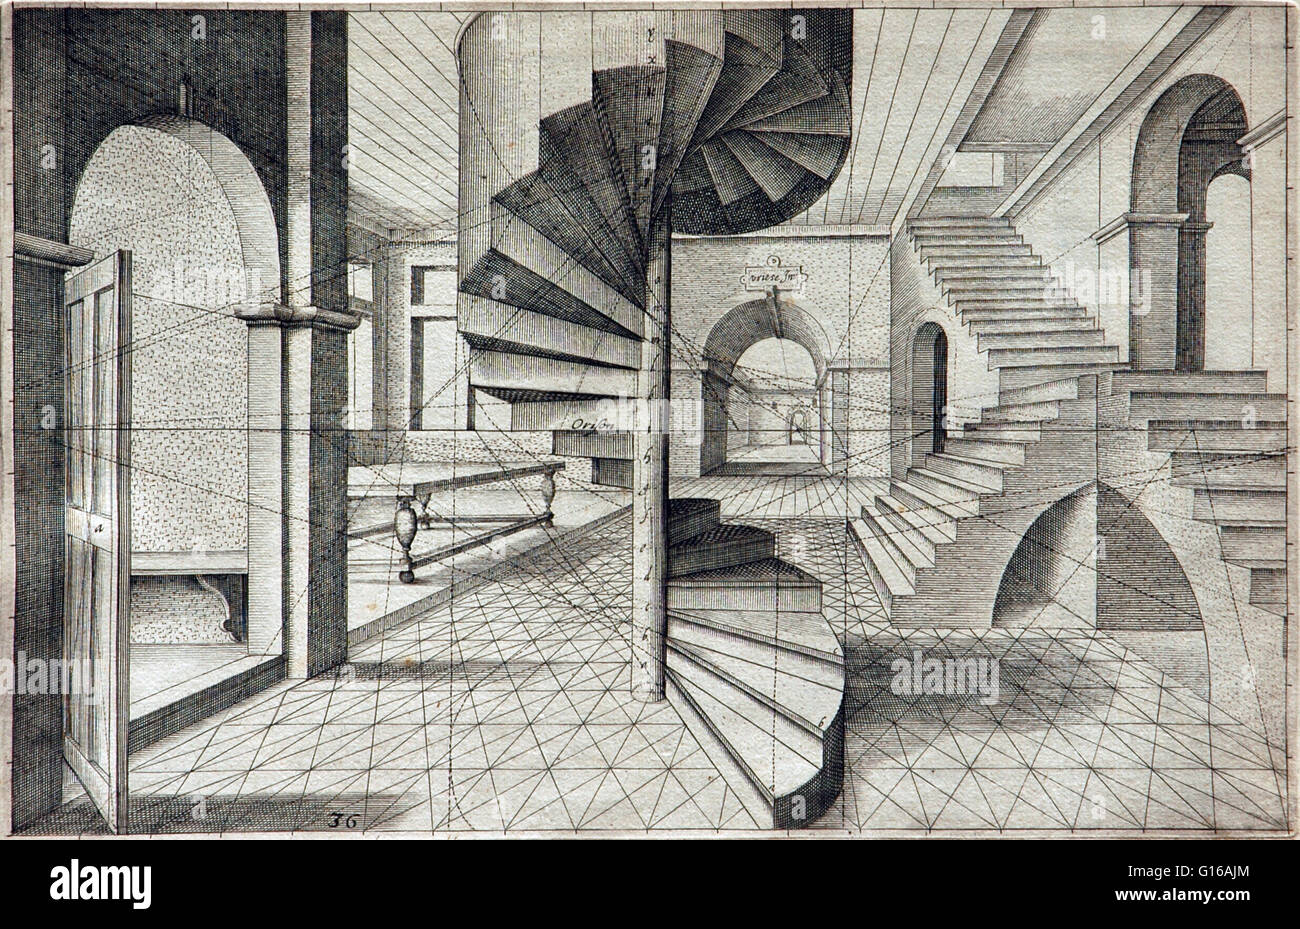 Hans Vredeman de Vries (1527-1607) was a Dutch Renaissance architect, painter, and engineer. He is known for his - Stock Image